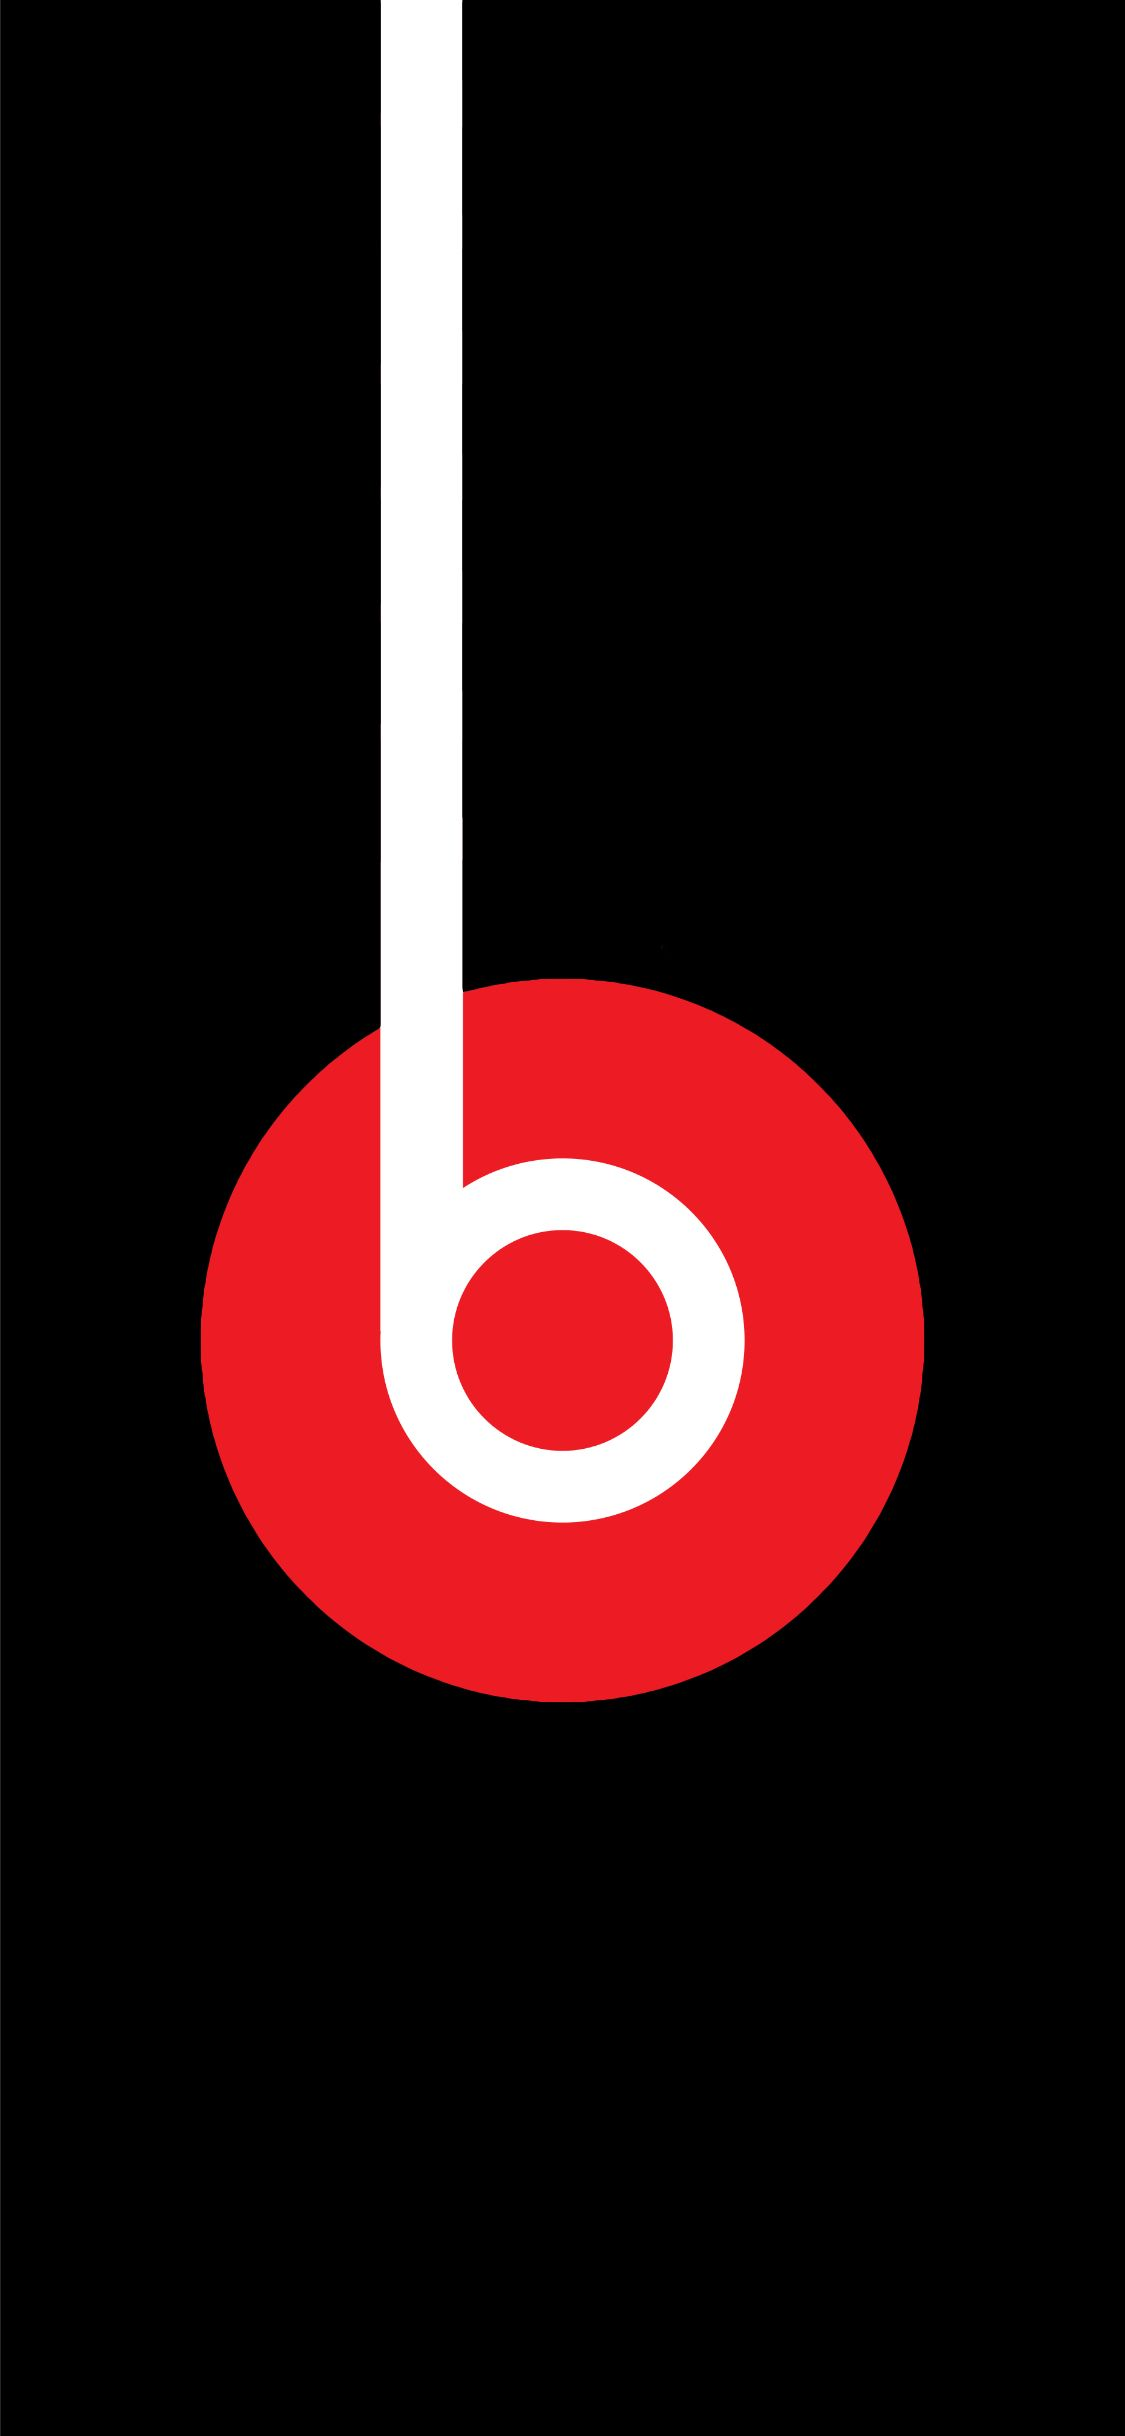 Beats | Wallpaper